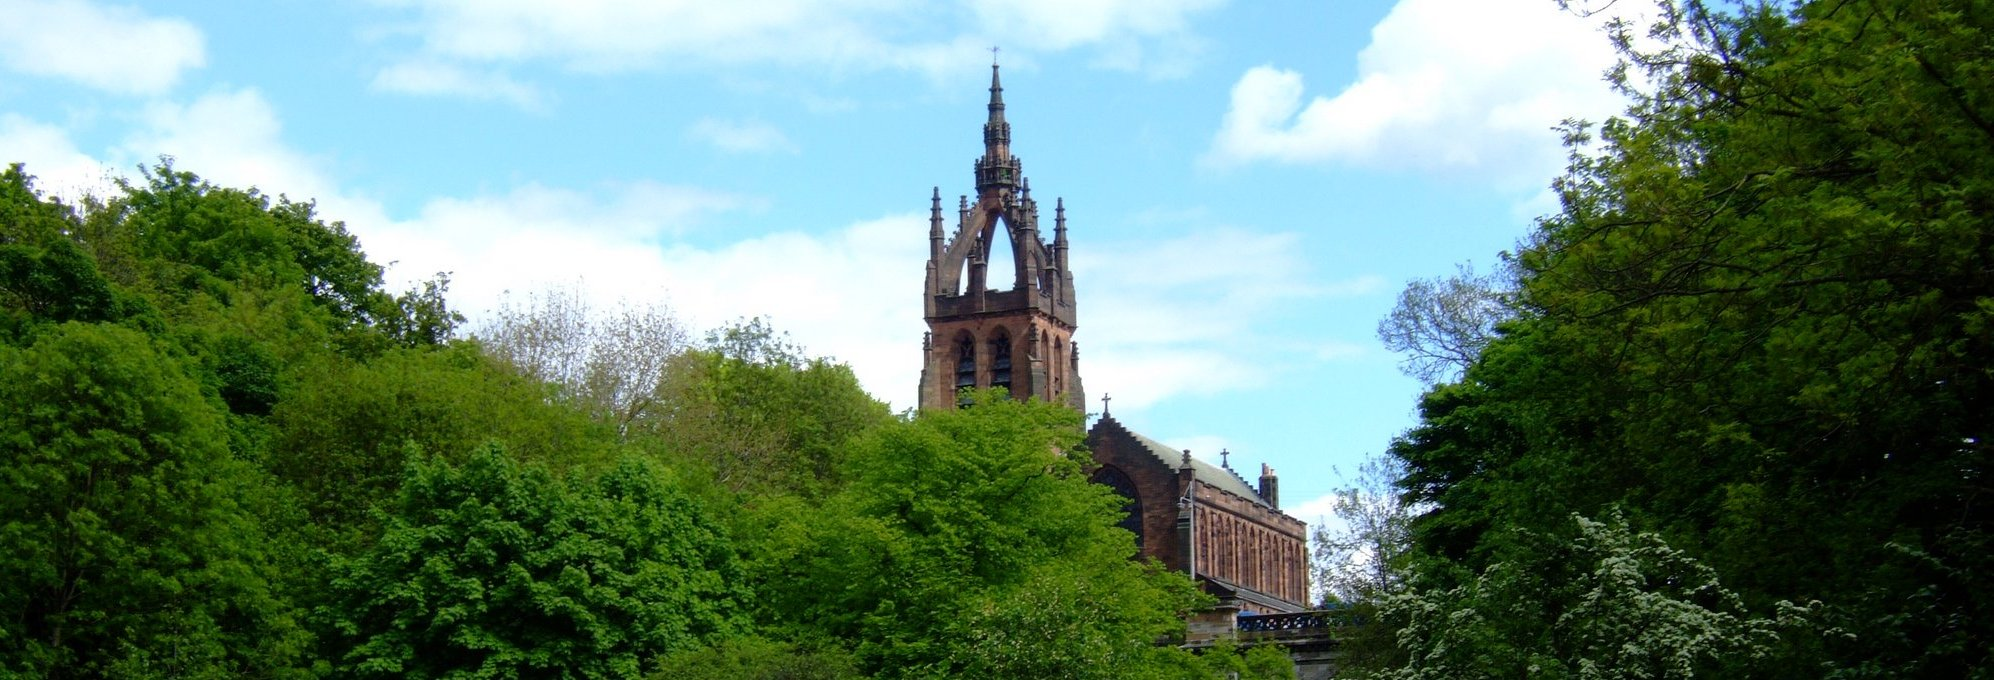 The fantastic Kelvin Stevenson Memorial Church